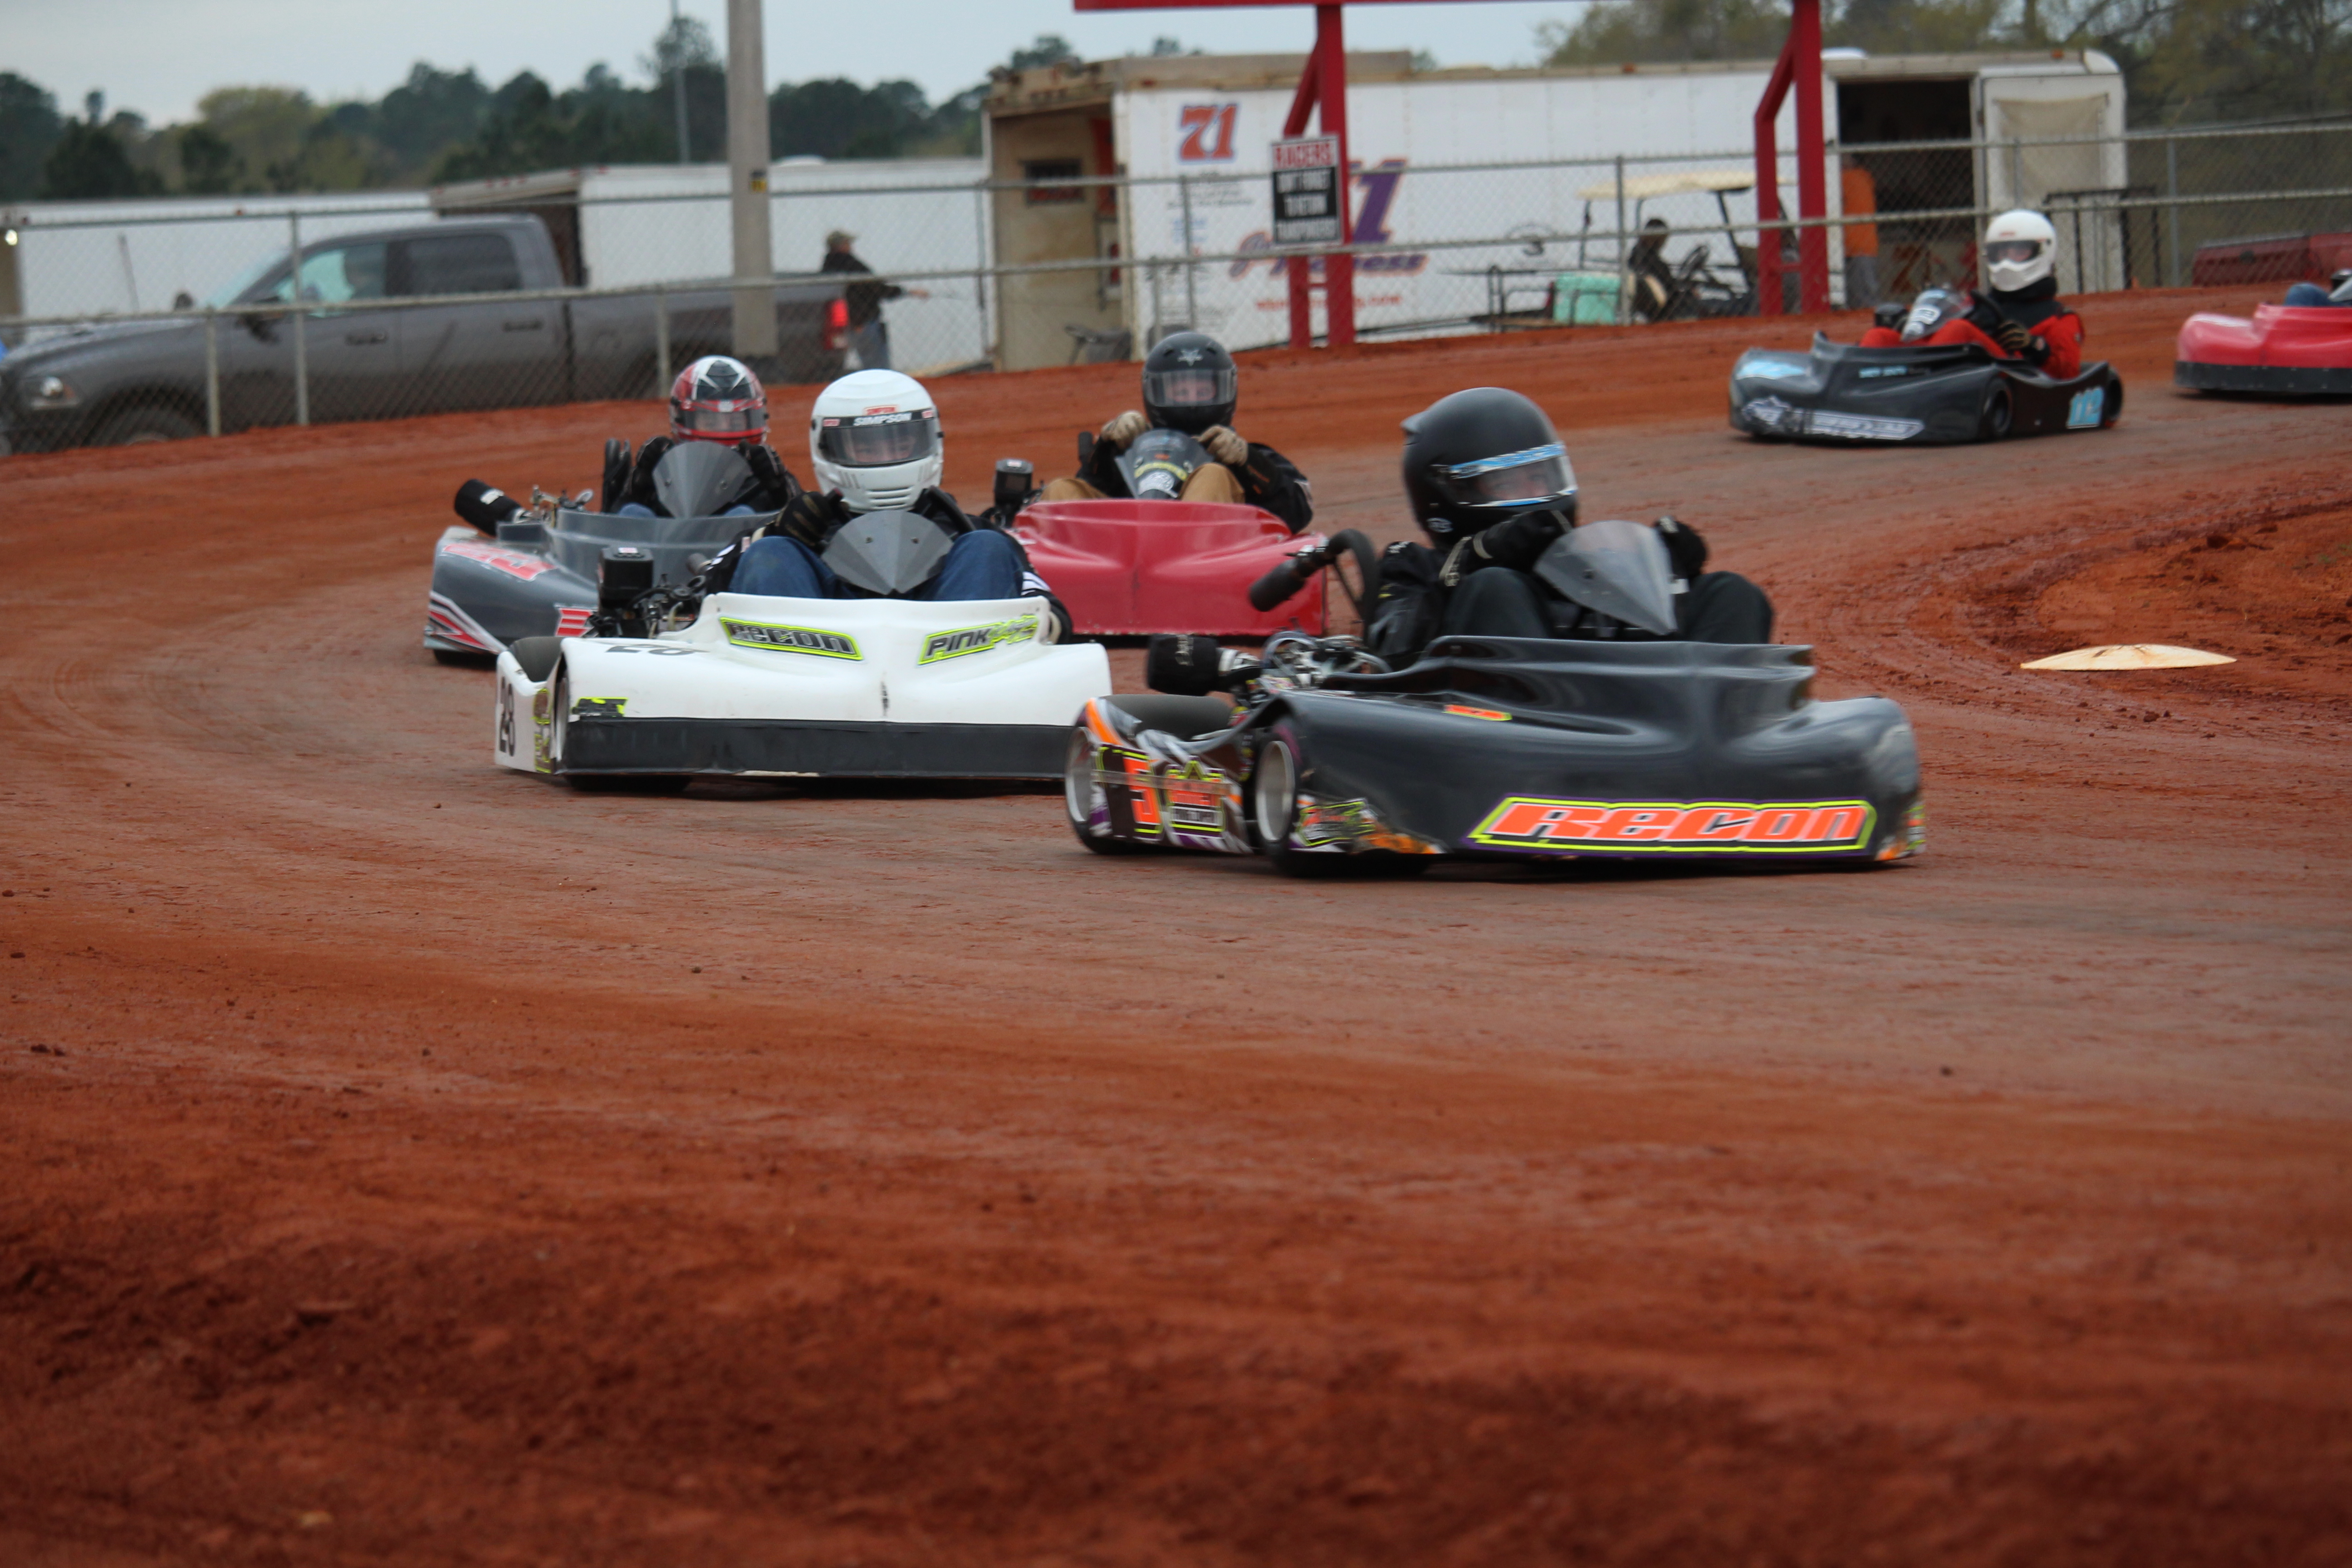 SATURDAY, MARCH 23, 2019 DOMINO'S PIZZA NIGHT, RACING IN ALL DIVISIONS & KARTING DIXIE STYLE